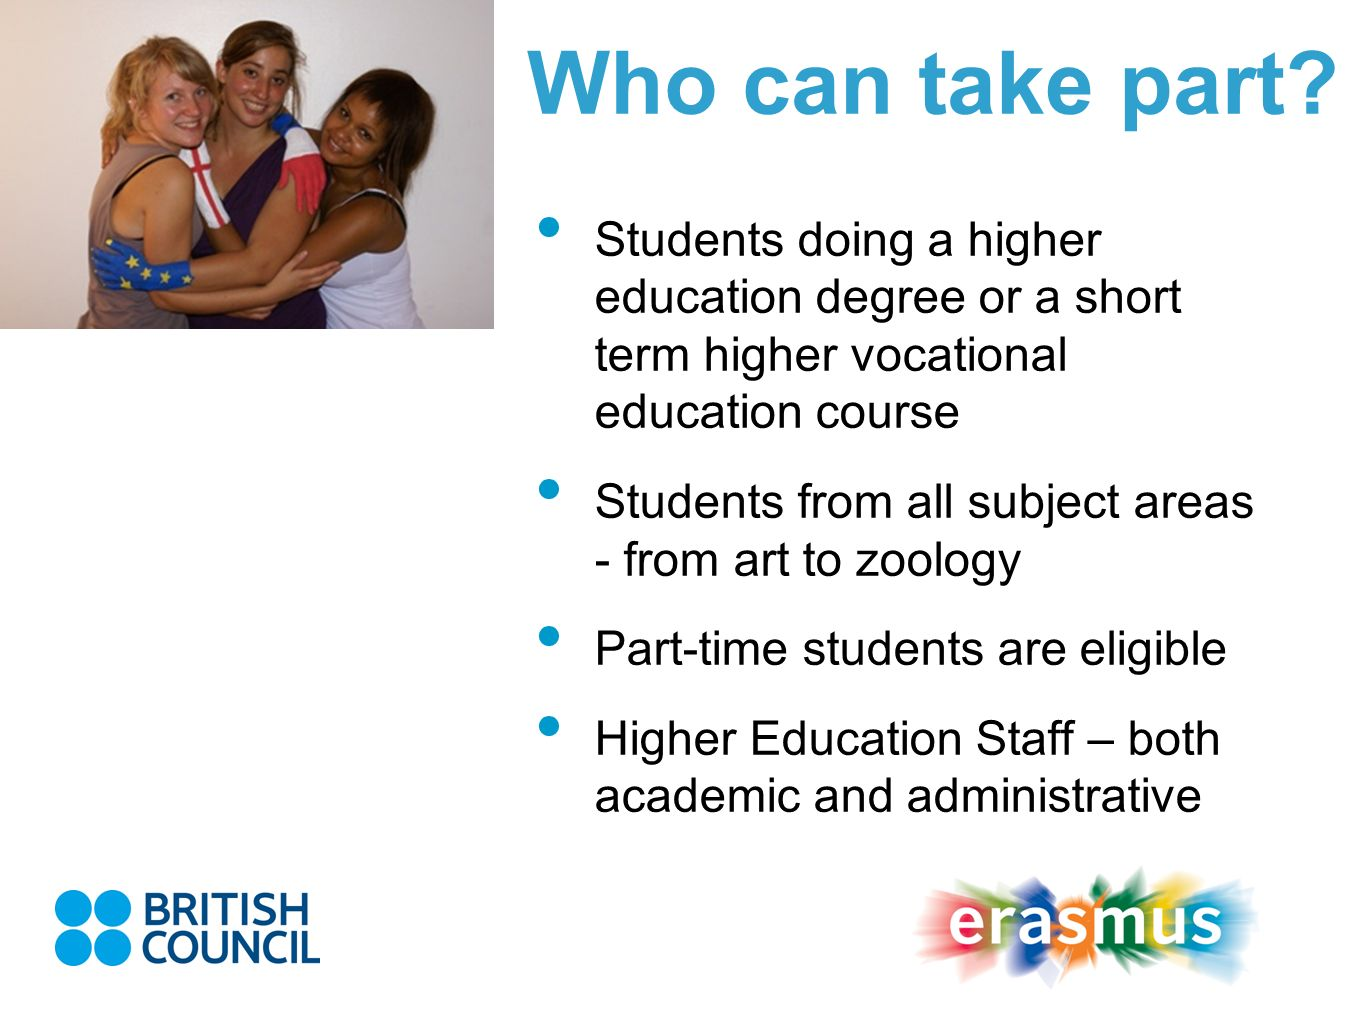 Who can take part Students doing a higher education degree or a short term higher vocational education course.